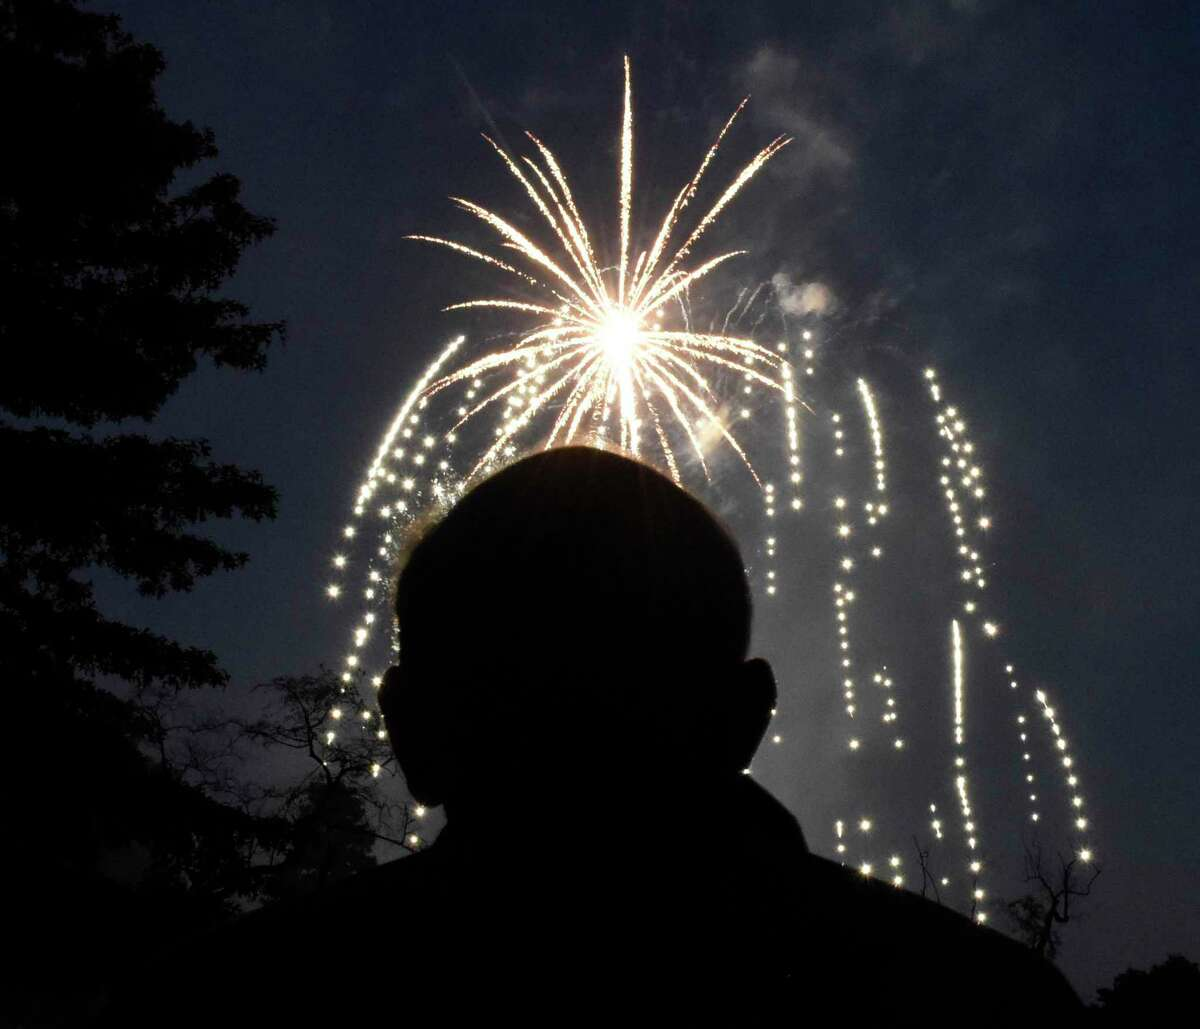 A colorful array of fireworks are displayed at Binney Park in Old Greenwich, Conn. Saturday, July 7, 2018. After a year of cancellations due to the pandemic, the fireworks shows will be back with ones scheduled for July 3 and July 5.